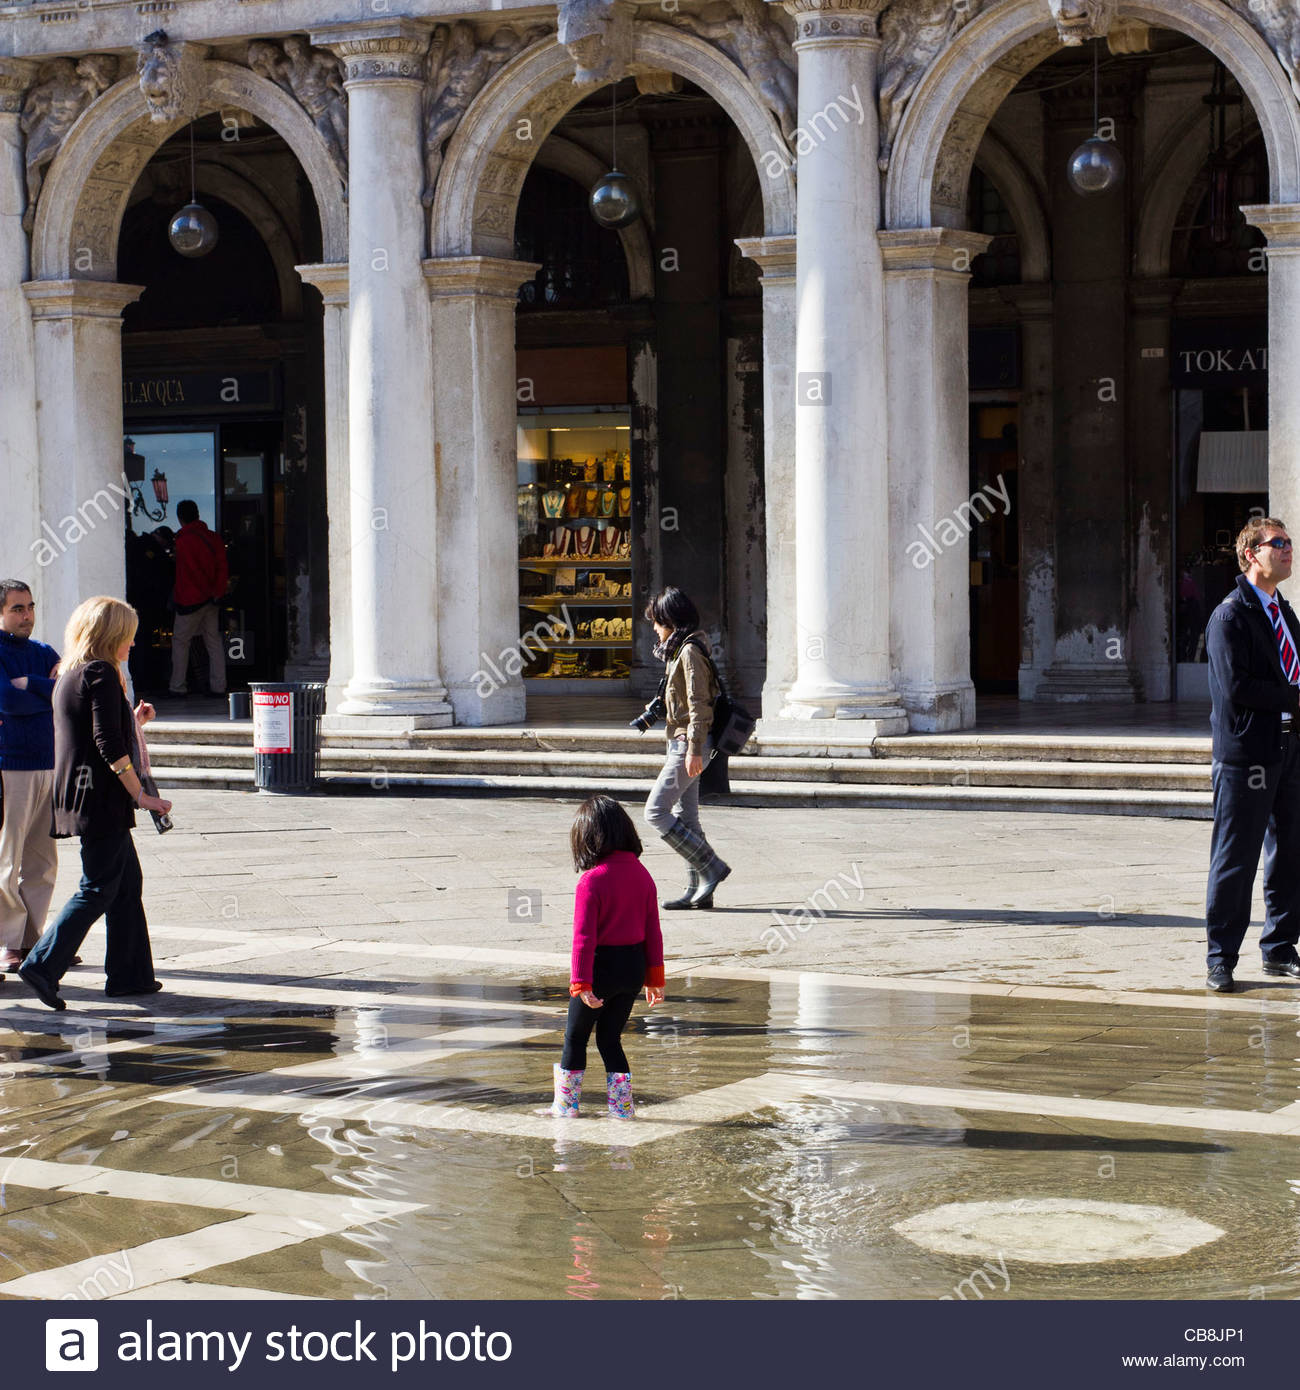 Venice Italy. Young girl plays in floodwater bubbling up from rain runoff drains. Stock Photo